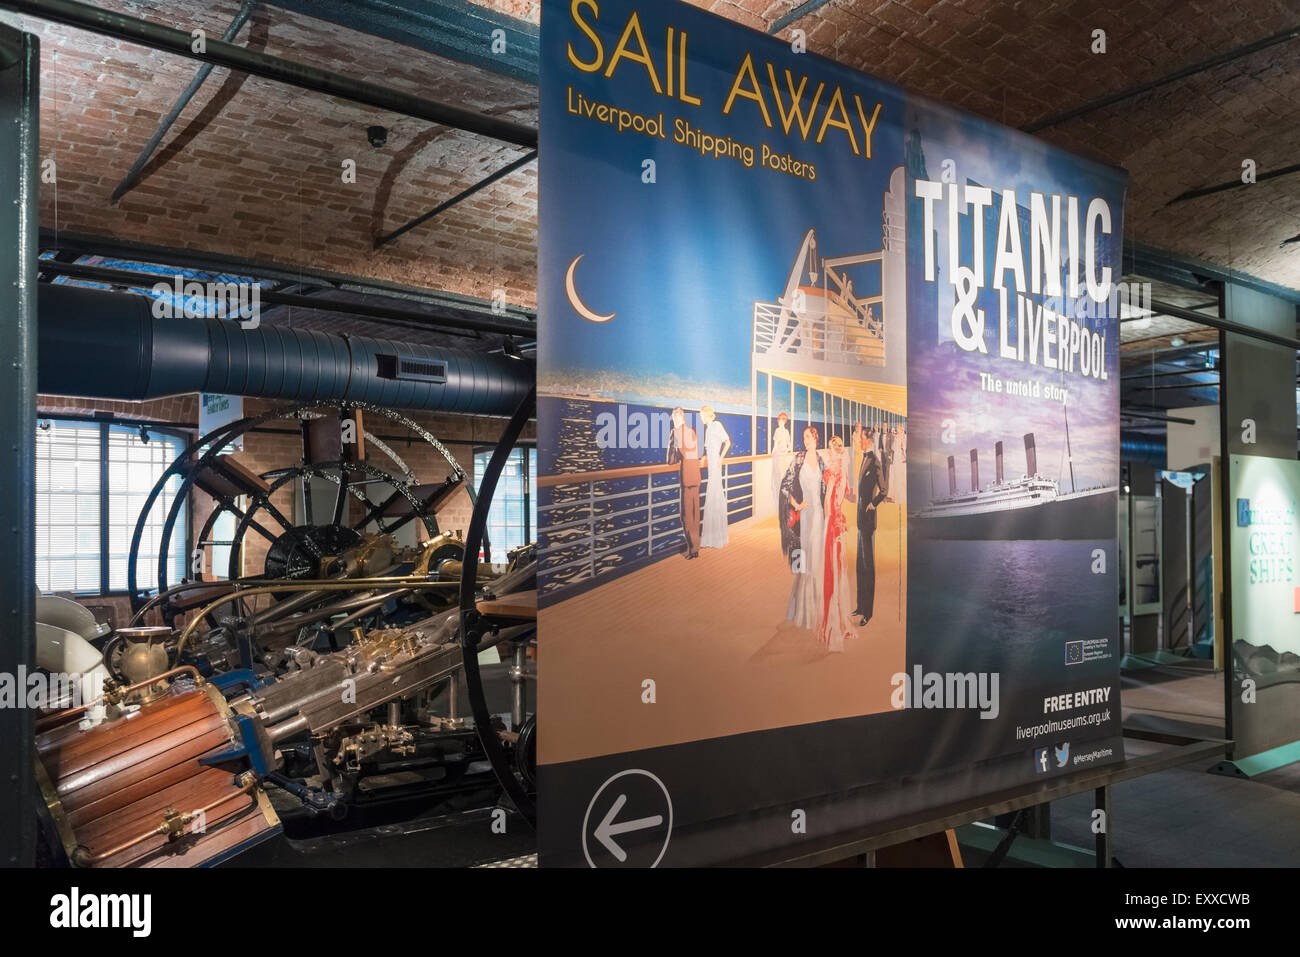 Exhibition in the Merseyside Maritime Museum, Liverpool, UK - Stock Image